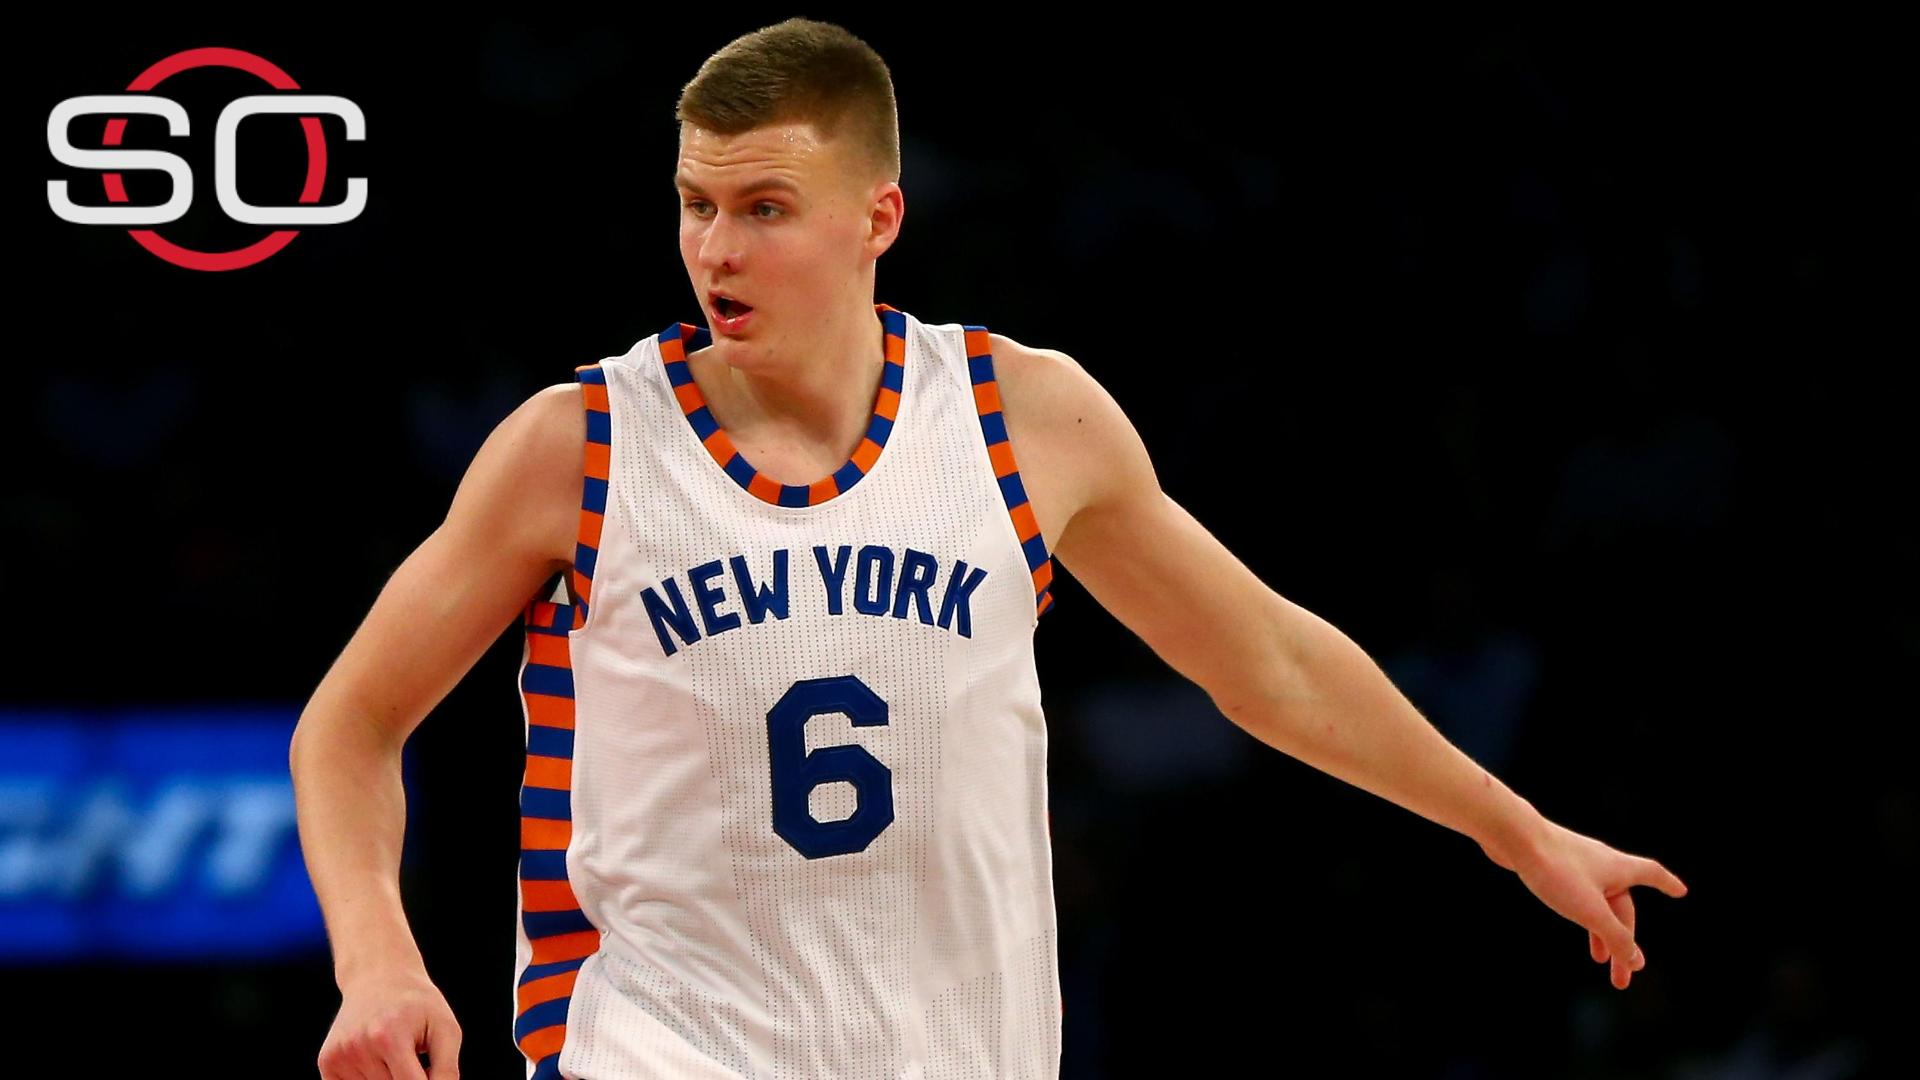 Porzingis among top NBA jersey sales